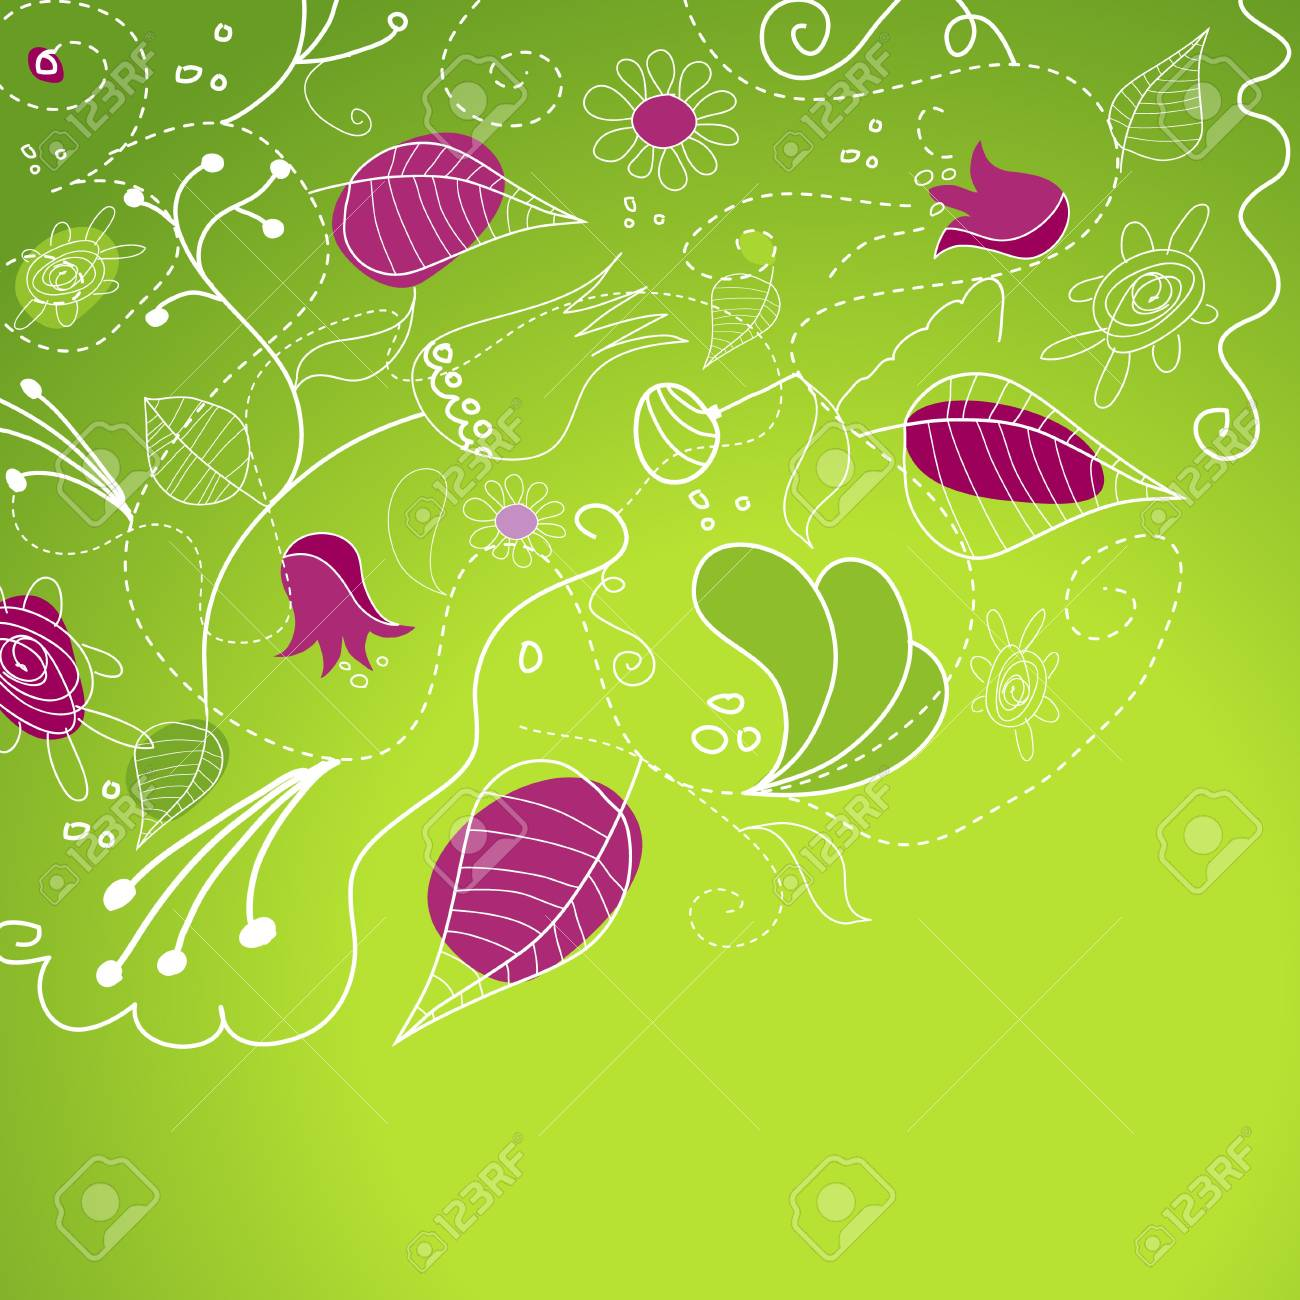 Illustration with flowers. Stock Vector - 6632786